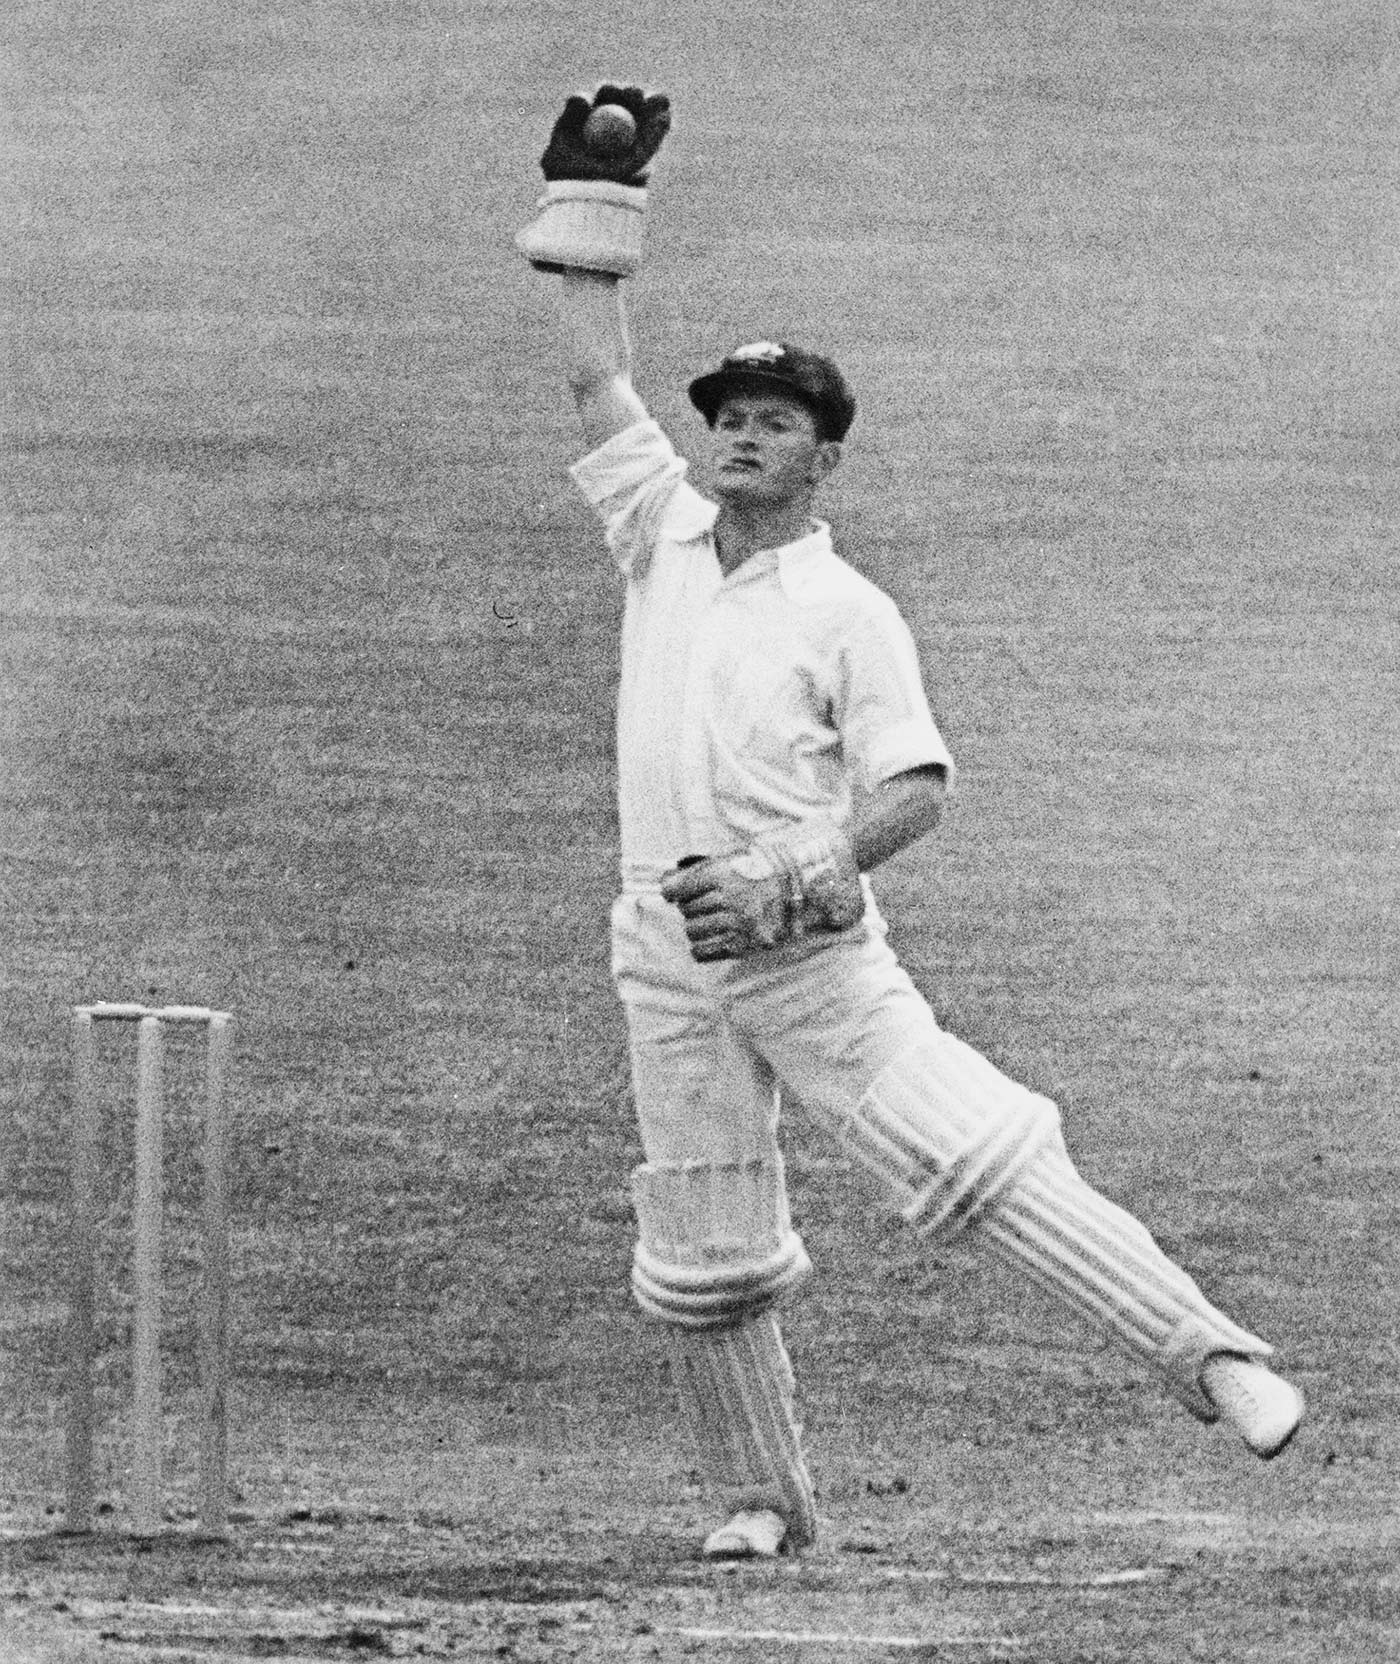 Maddocks in action in a match against Surrey on the 1956 tour